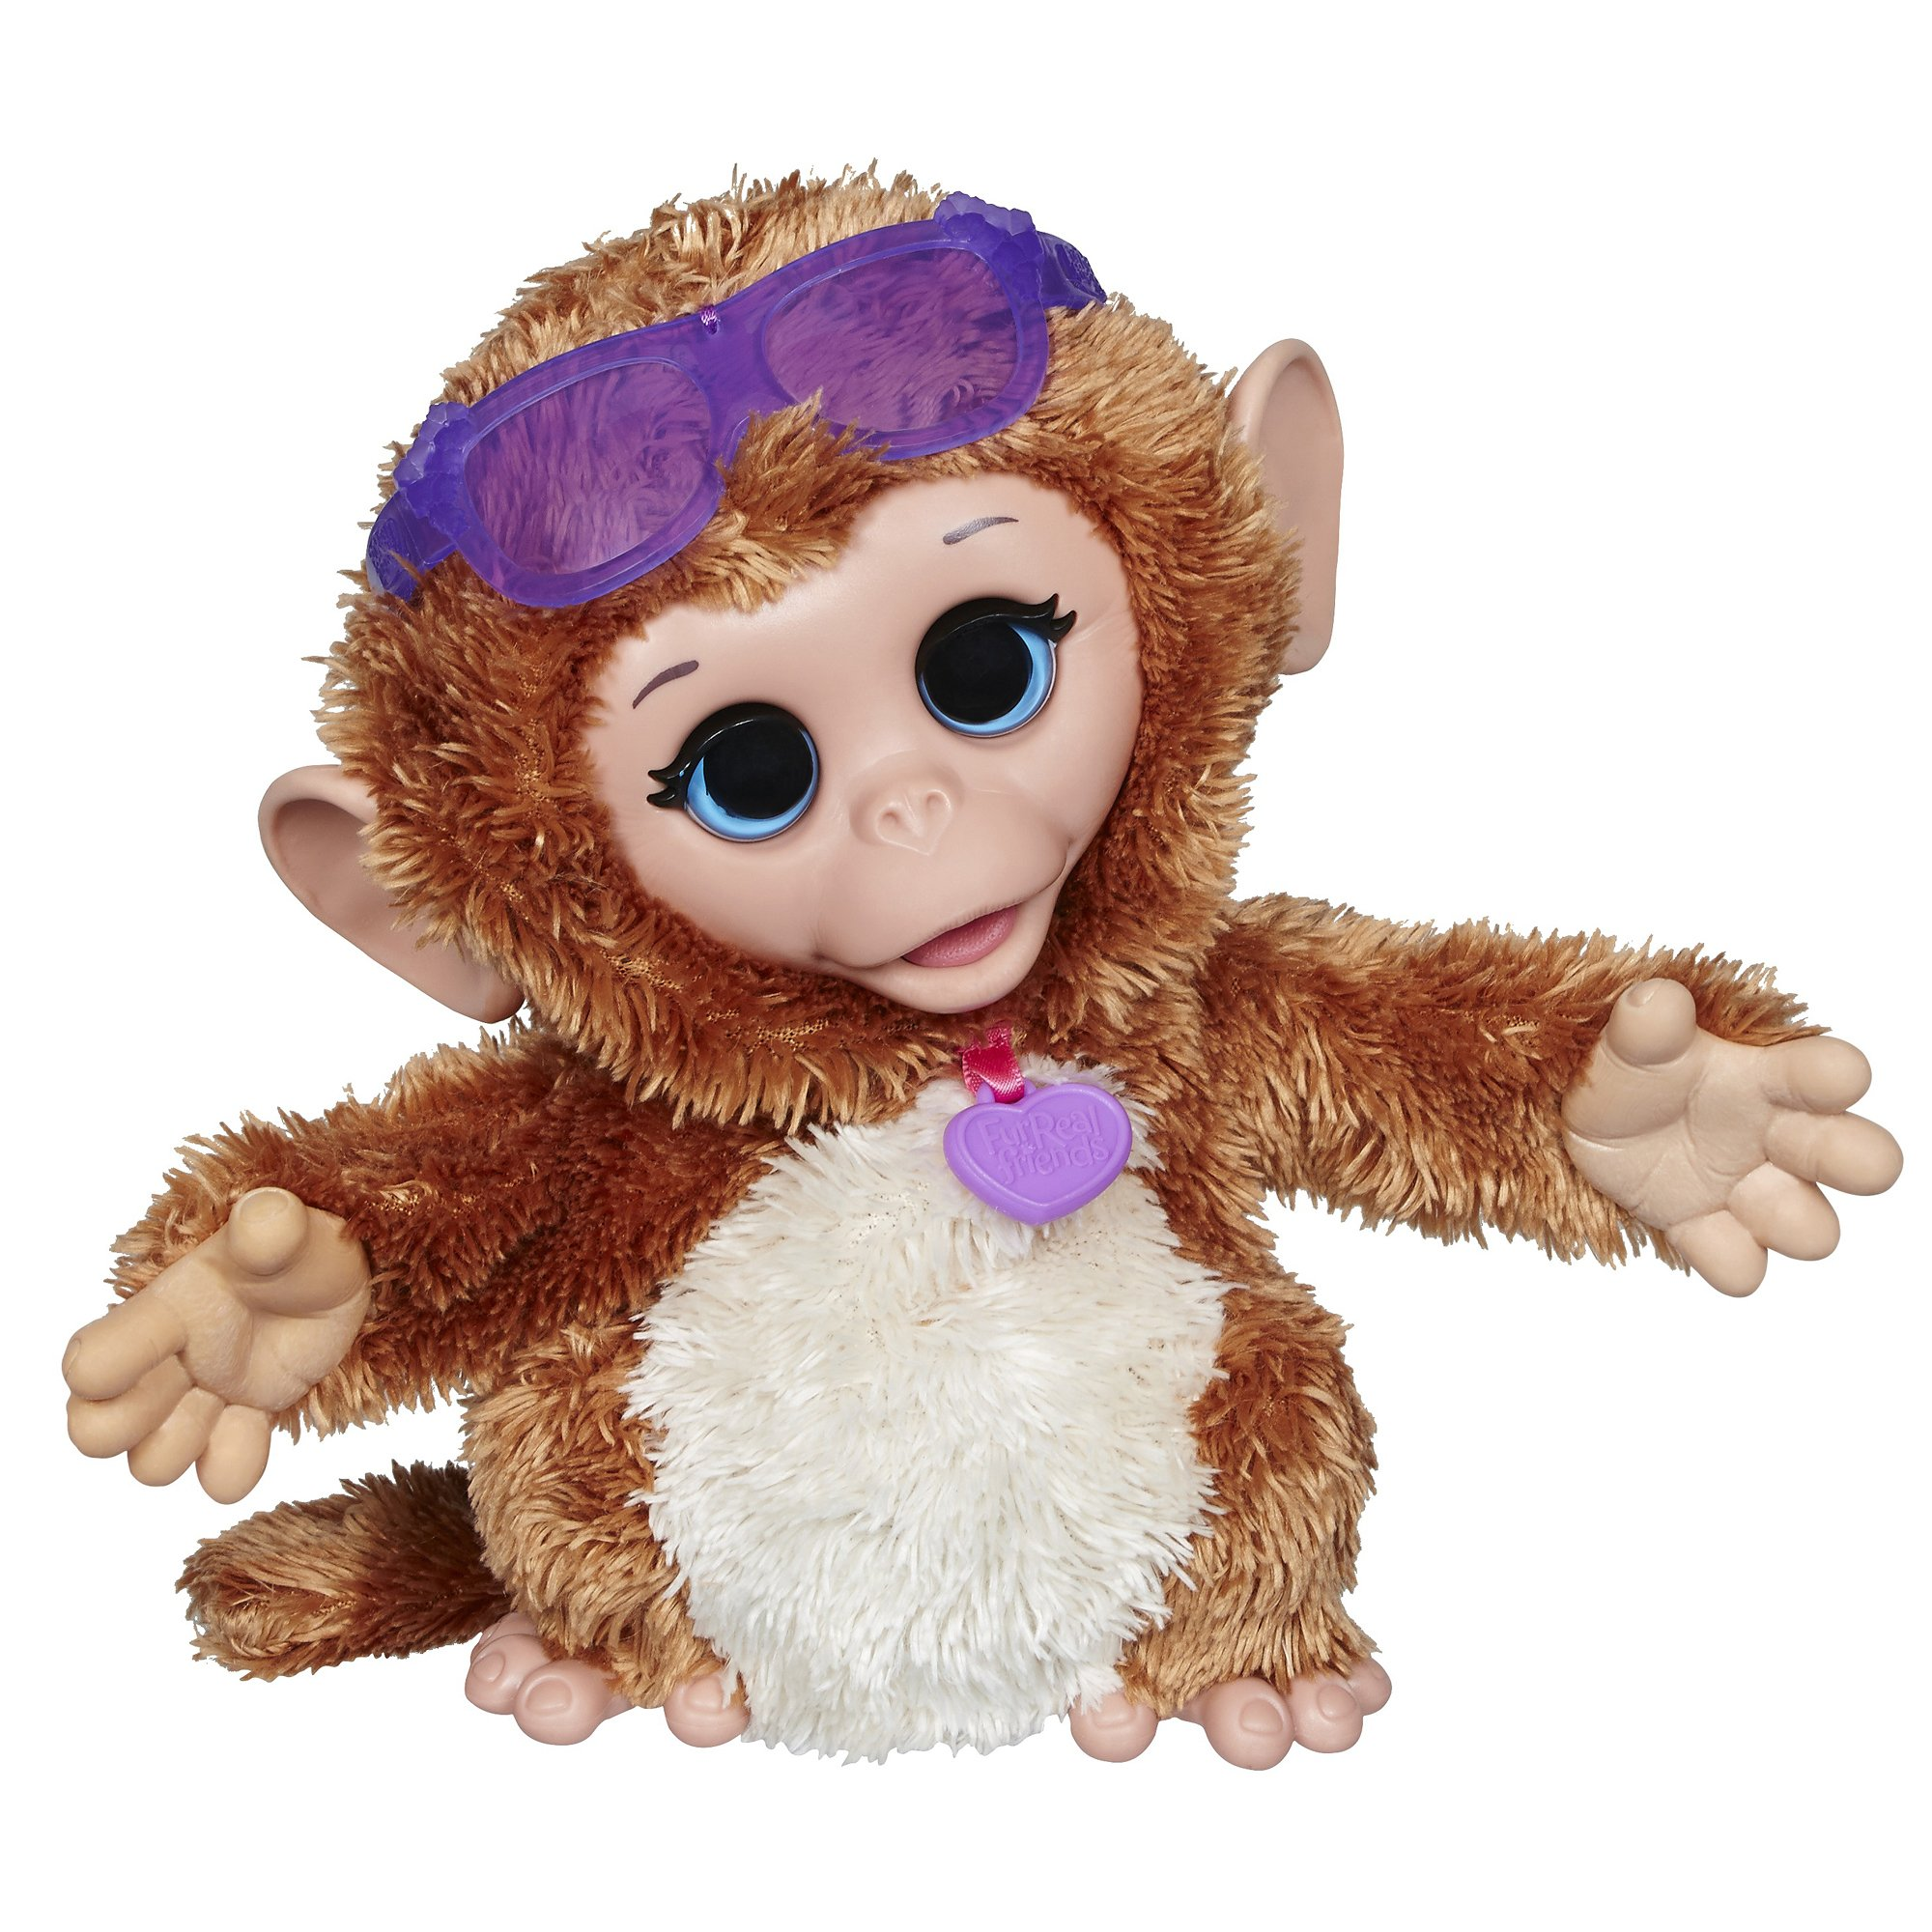 FurReal Friends Baby Cuddles My Giggly Monkey Pet Plush by FurReal (Image #1)